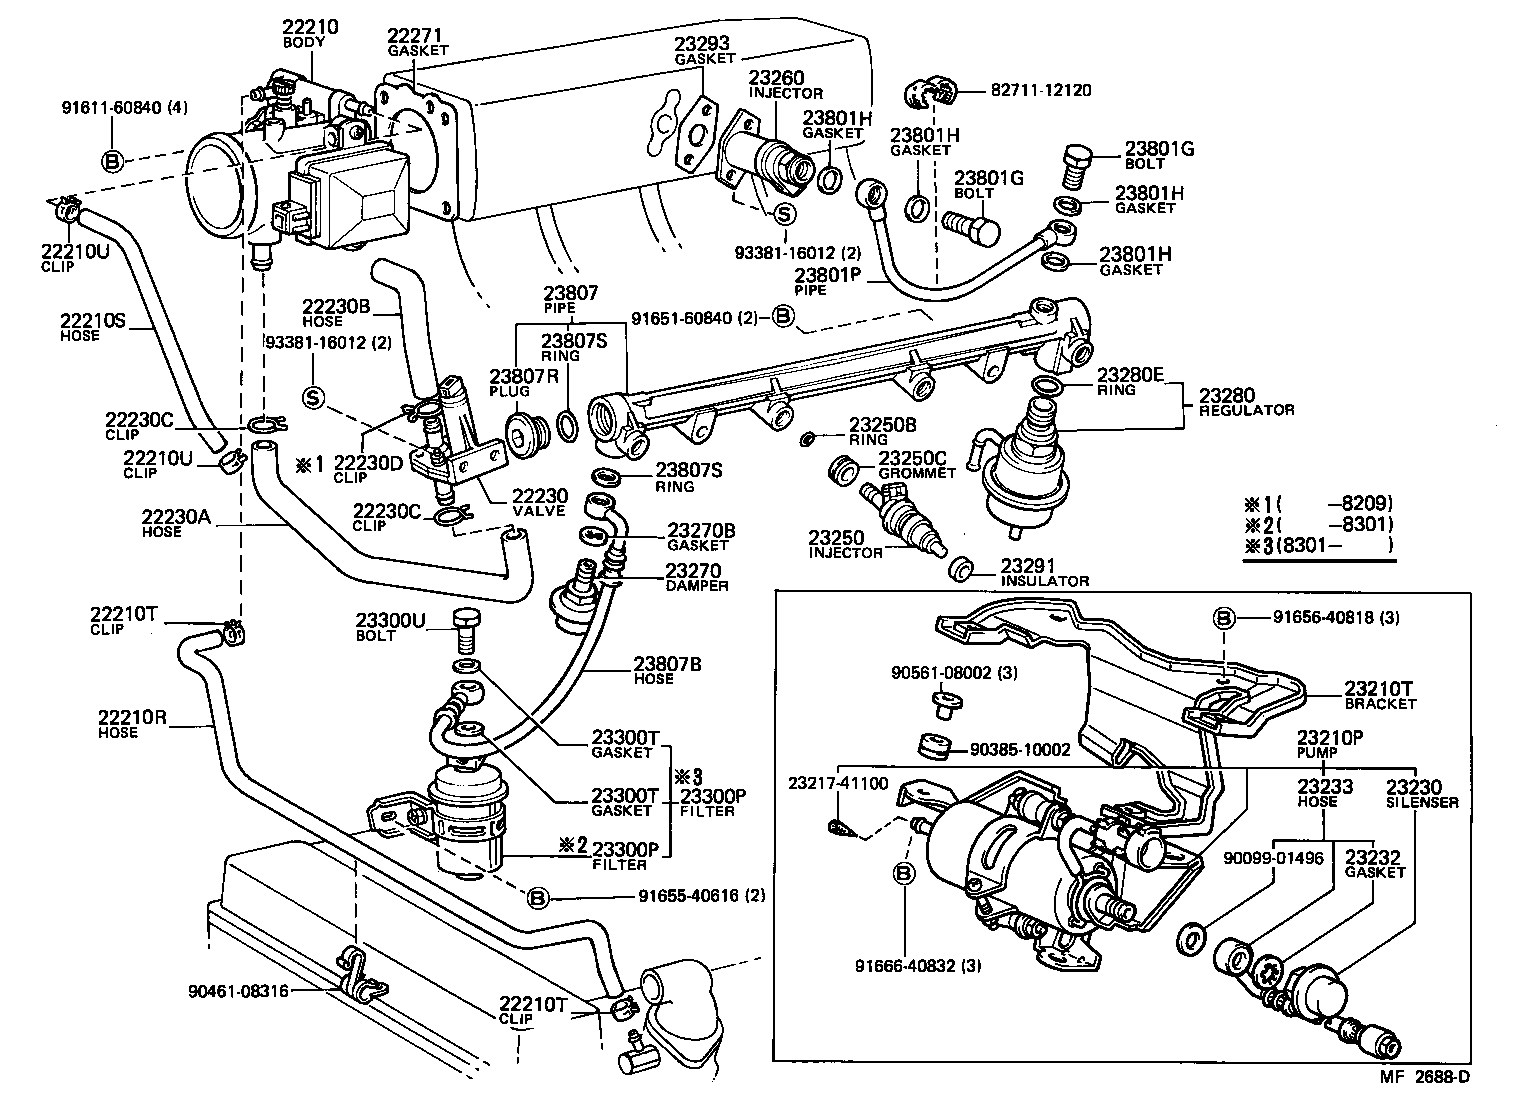 Toyota Celicata61 Bcmxf Tool Engine Fuel Injection System 1977 Celica Wiring Diagram Std Part